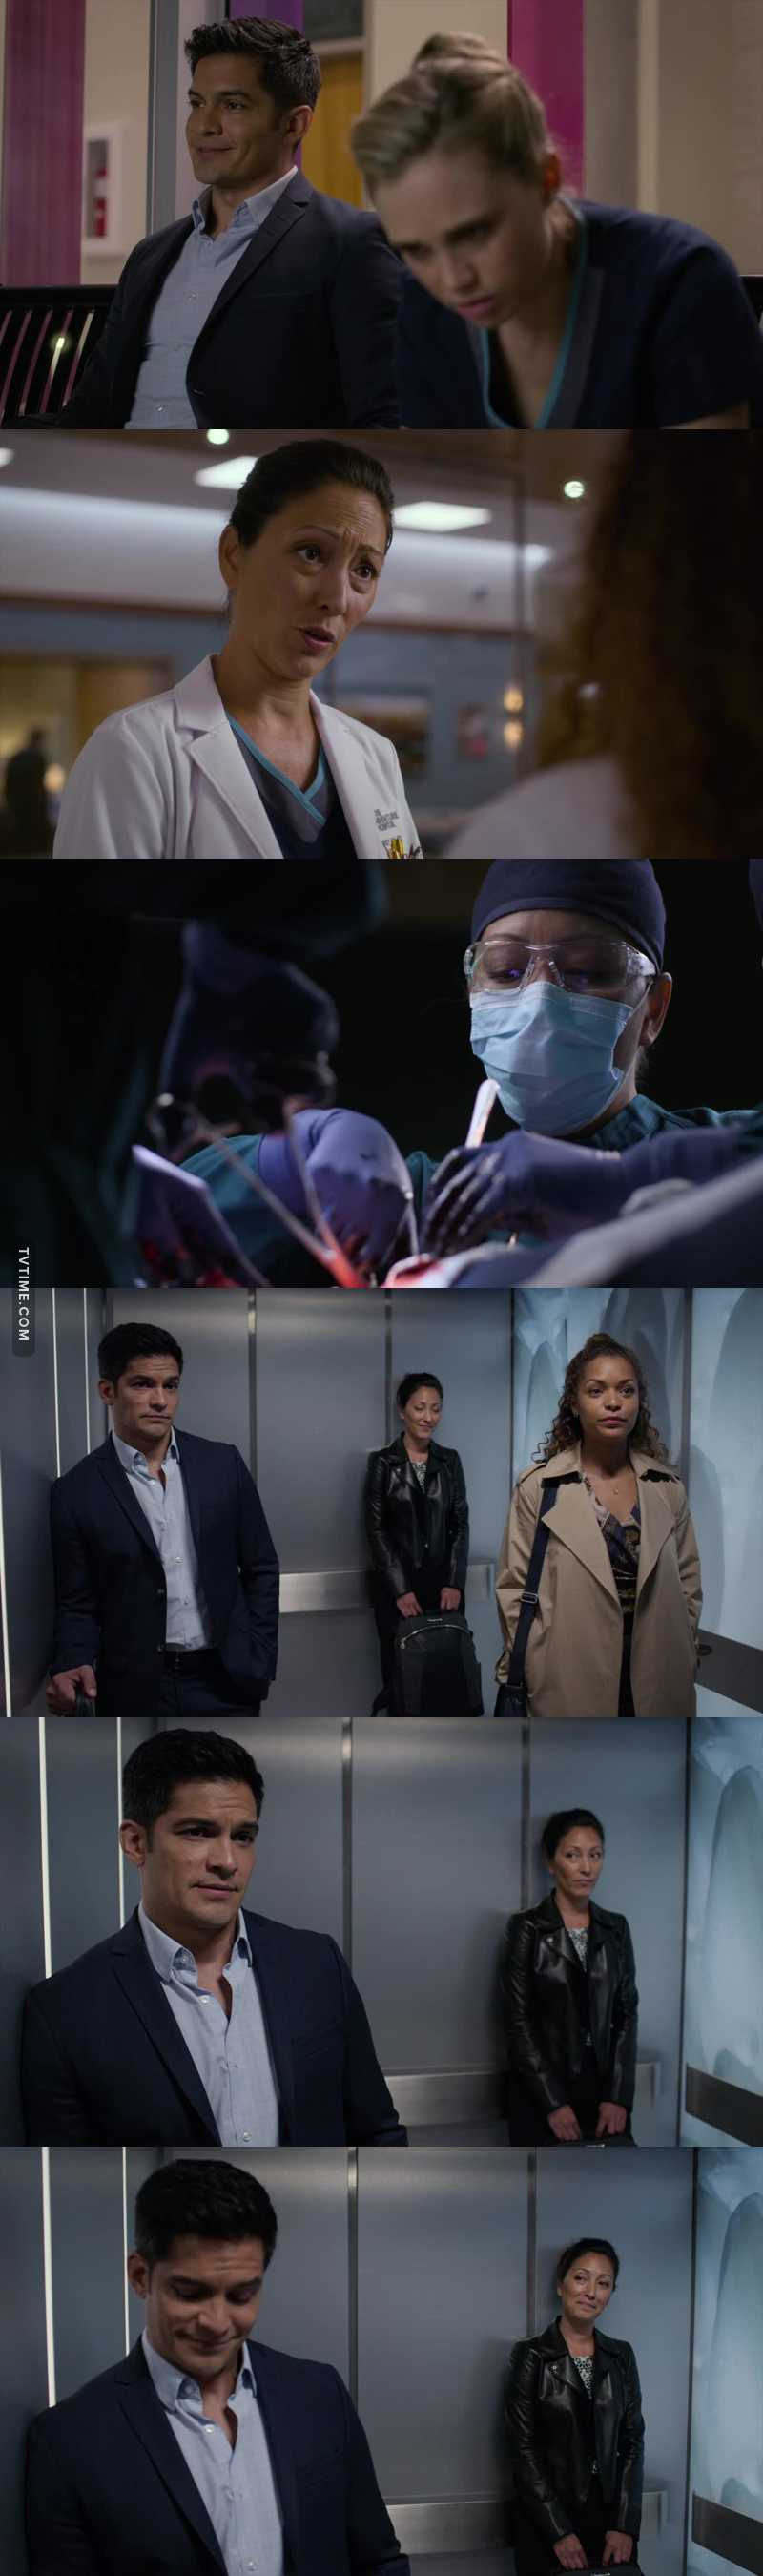 I loved finding out that they went to med school together and he's been competing with her ever since. Dr. Lim just keeps getting more interesting.